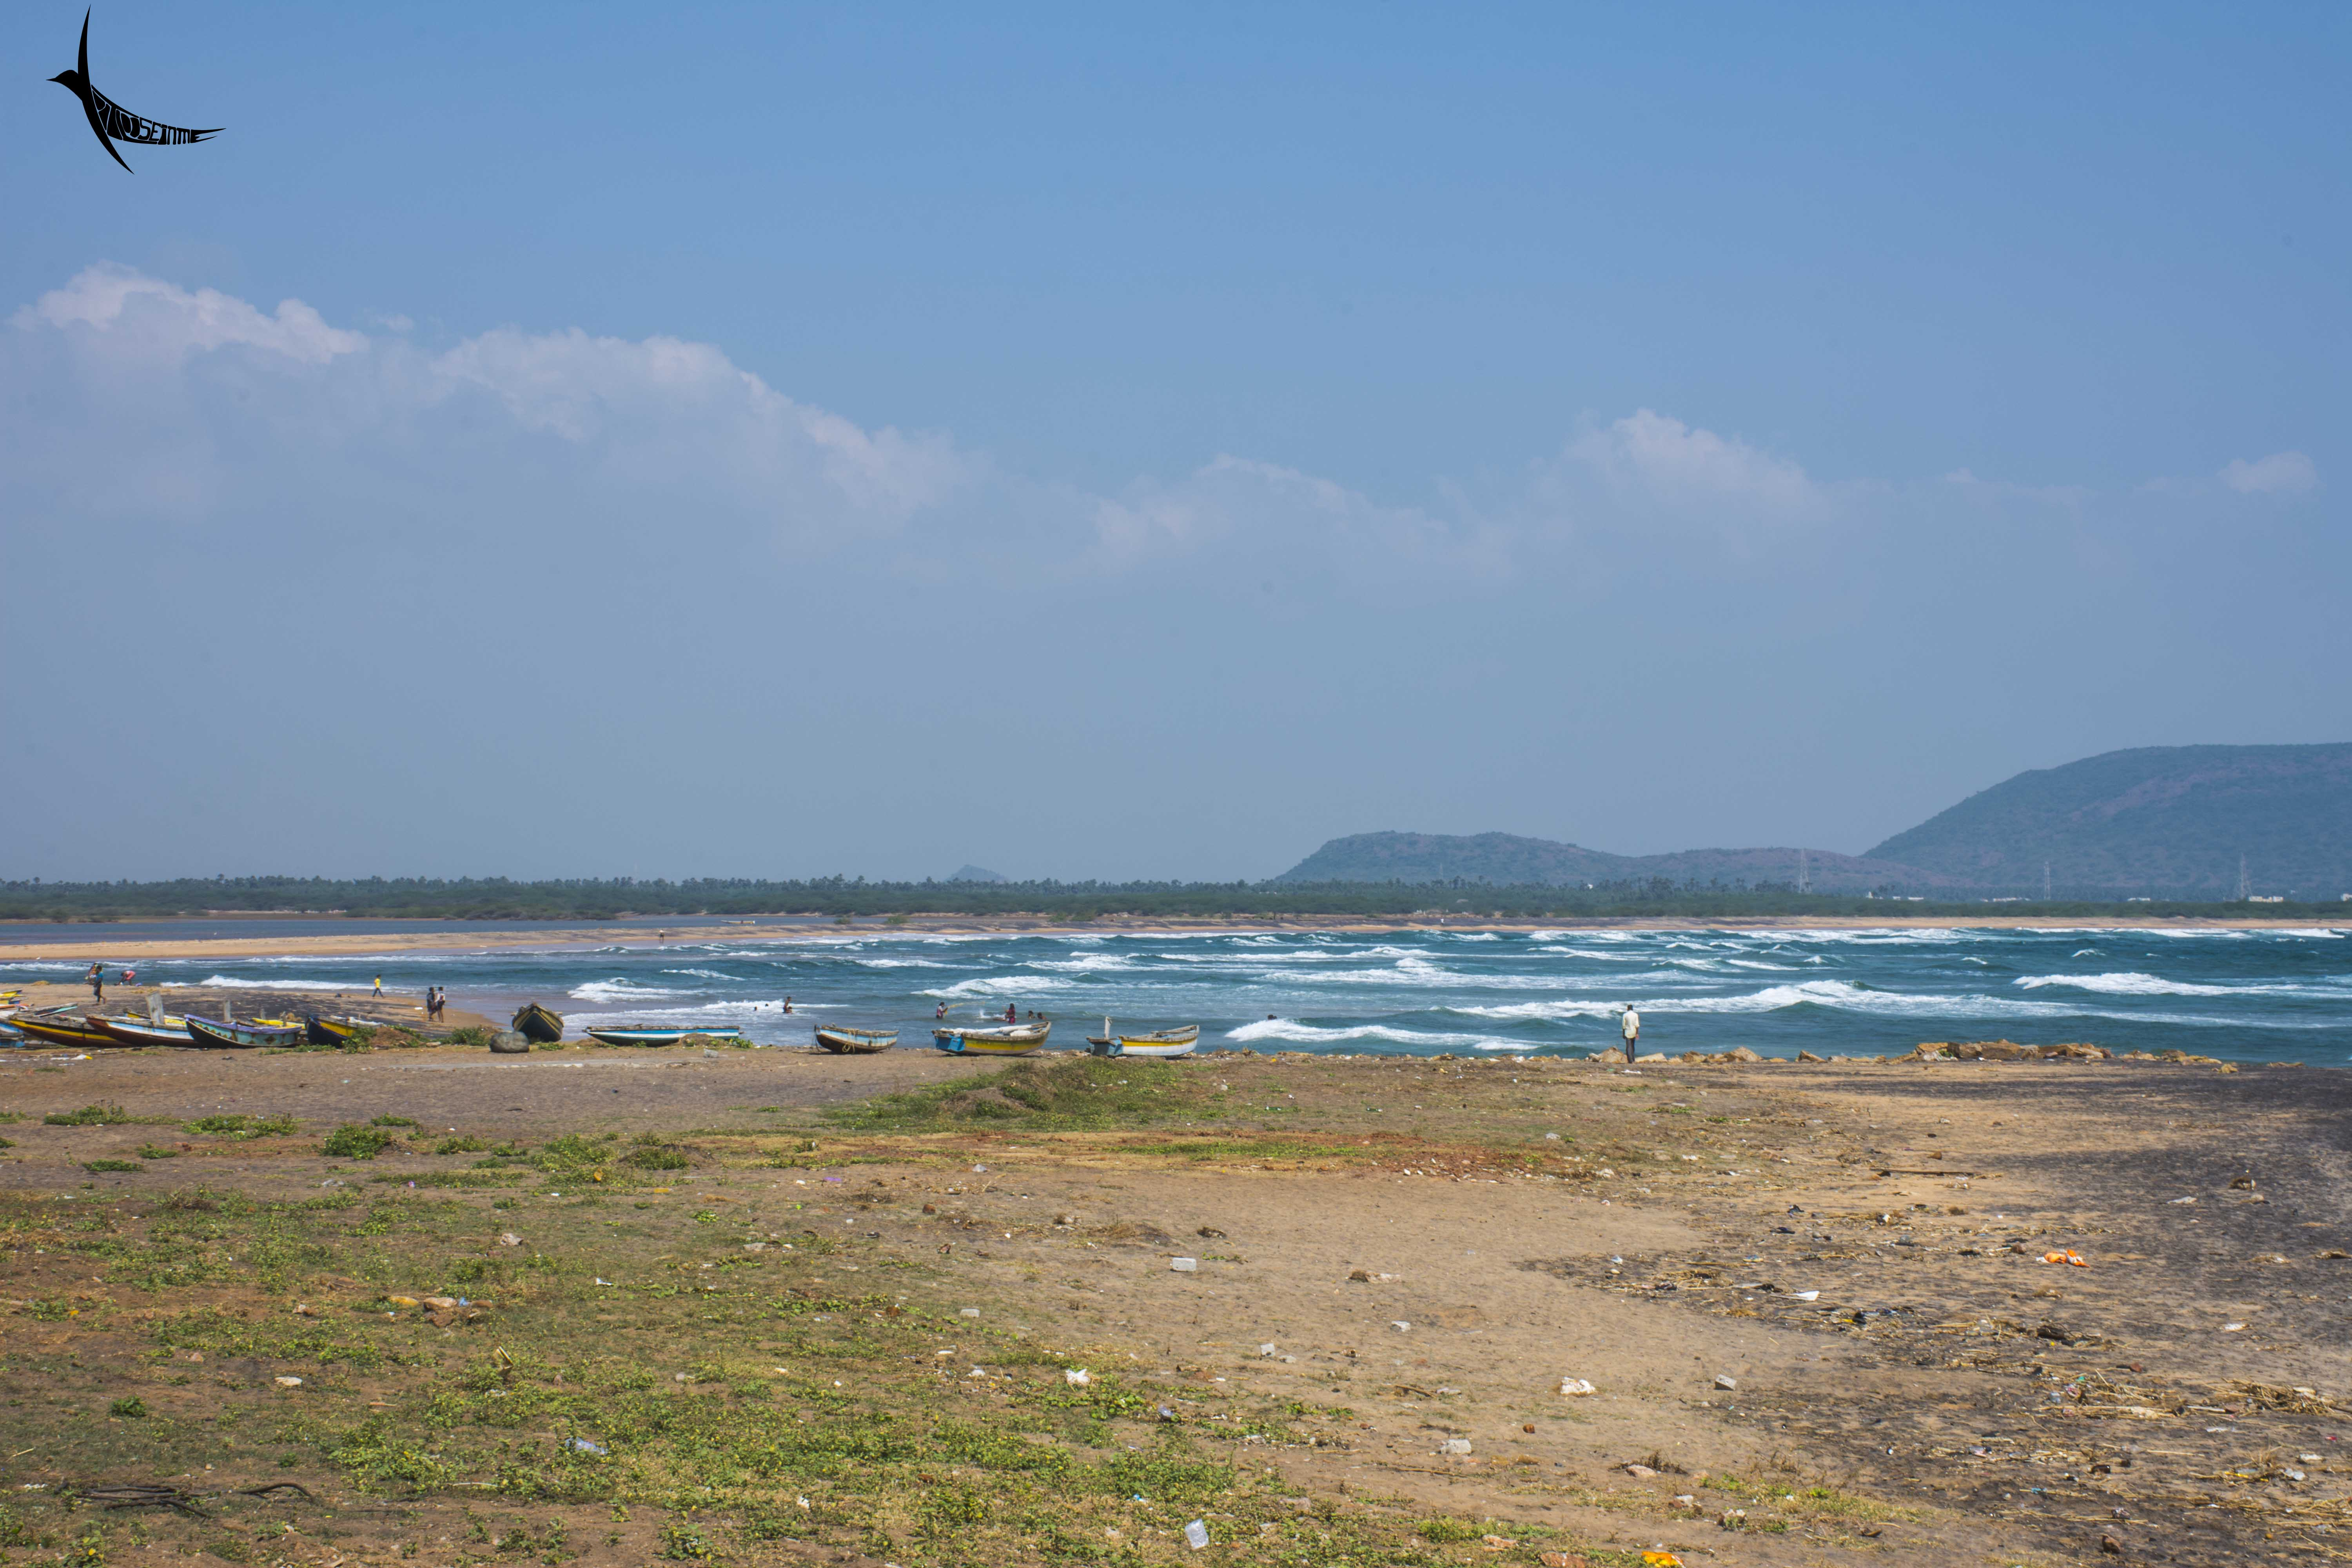 Bheemili beach with the Gosthani river mouth